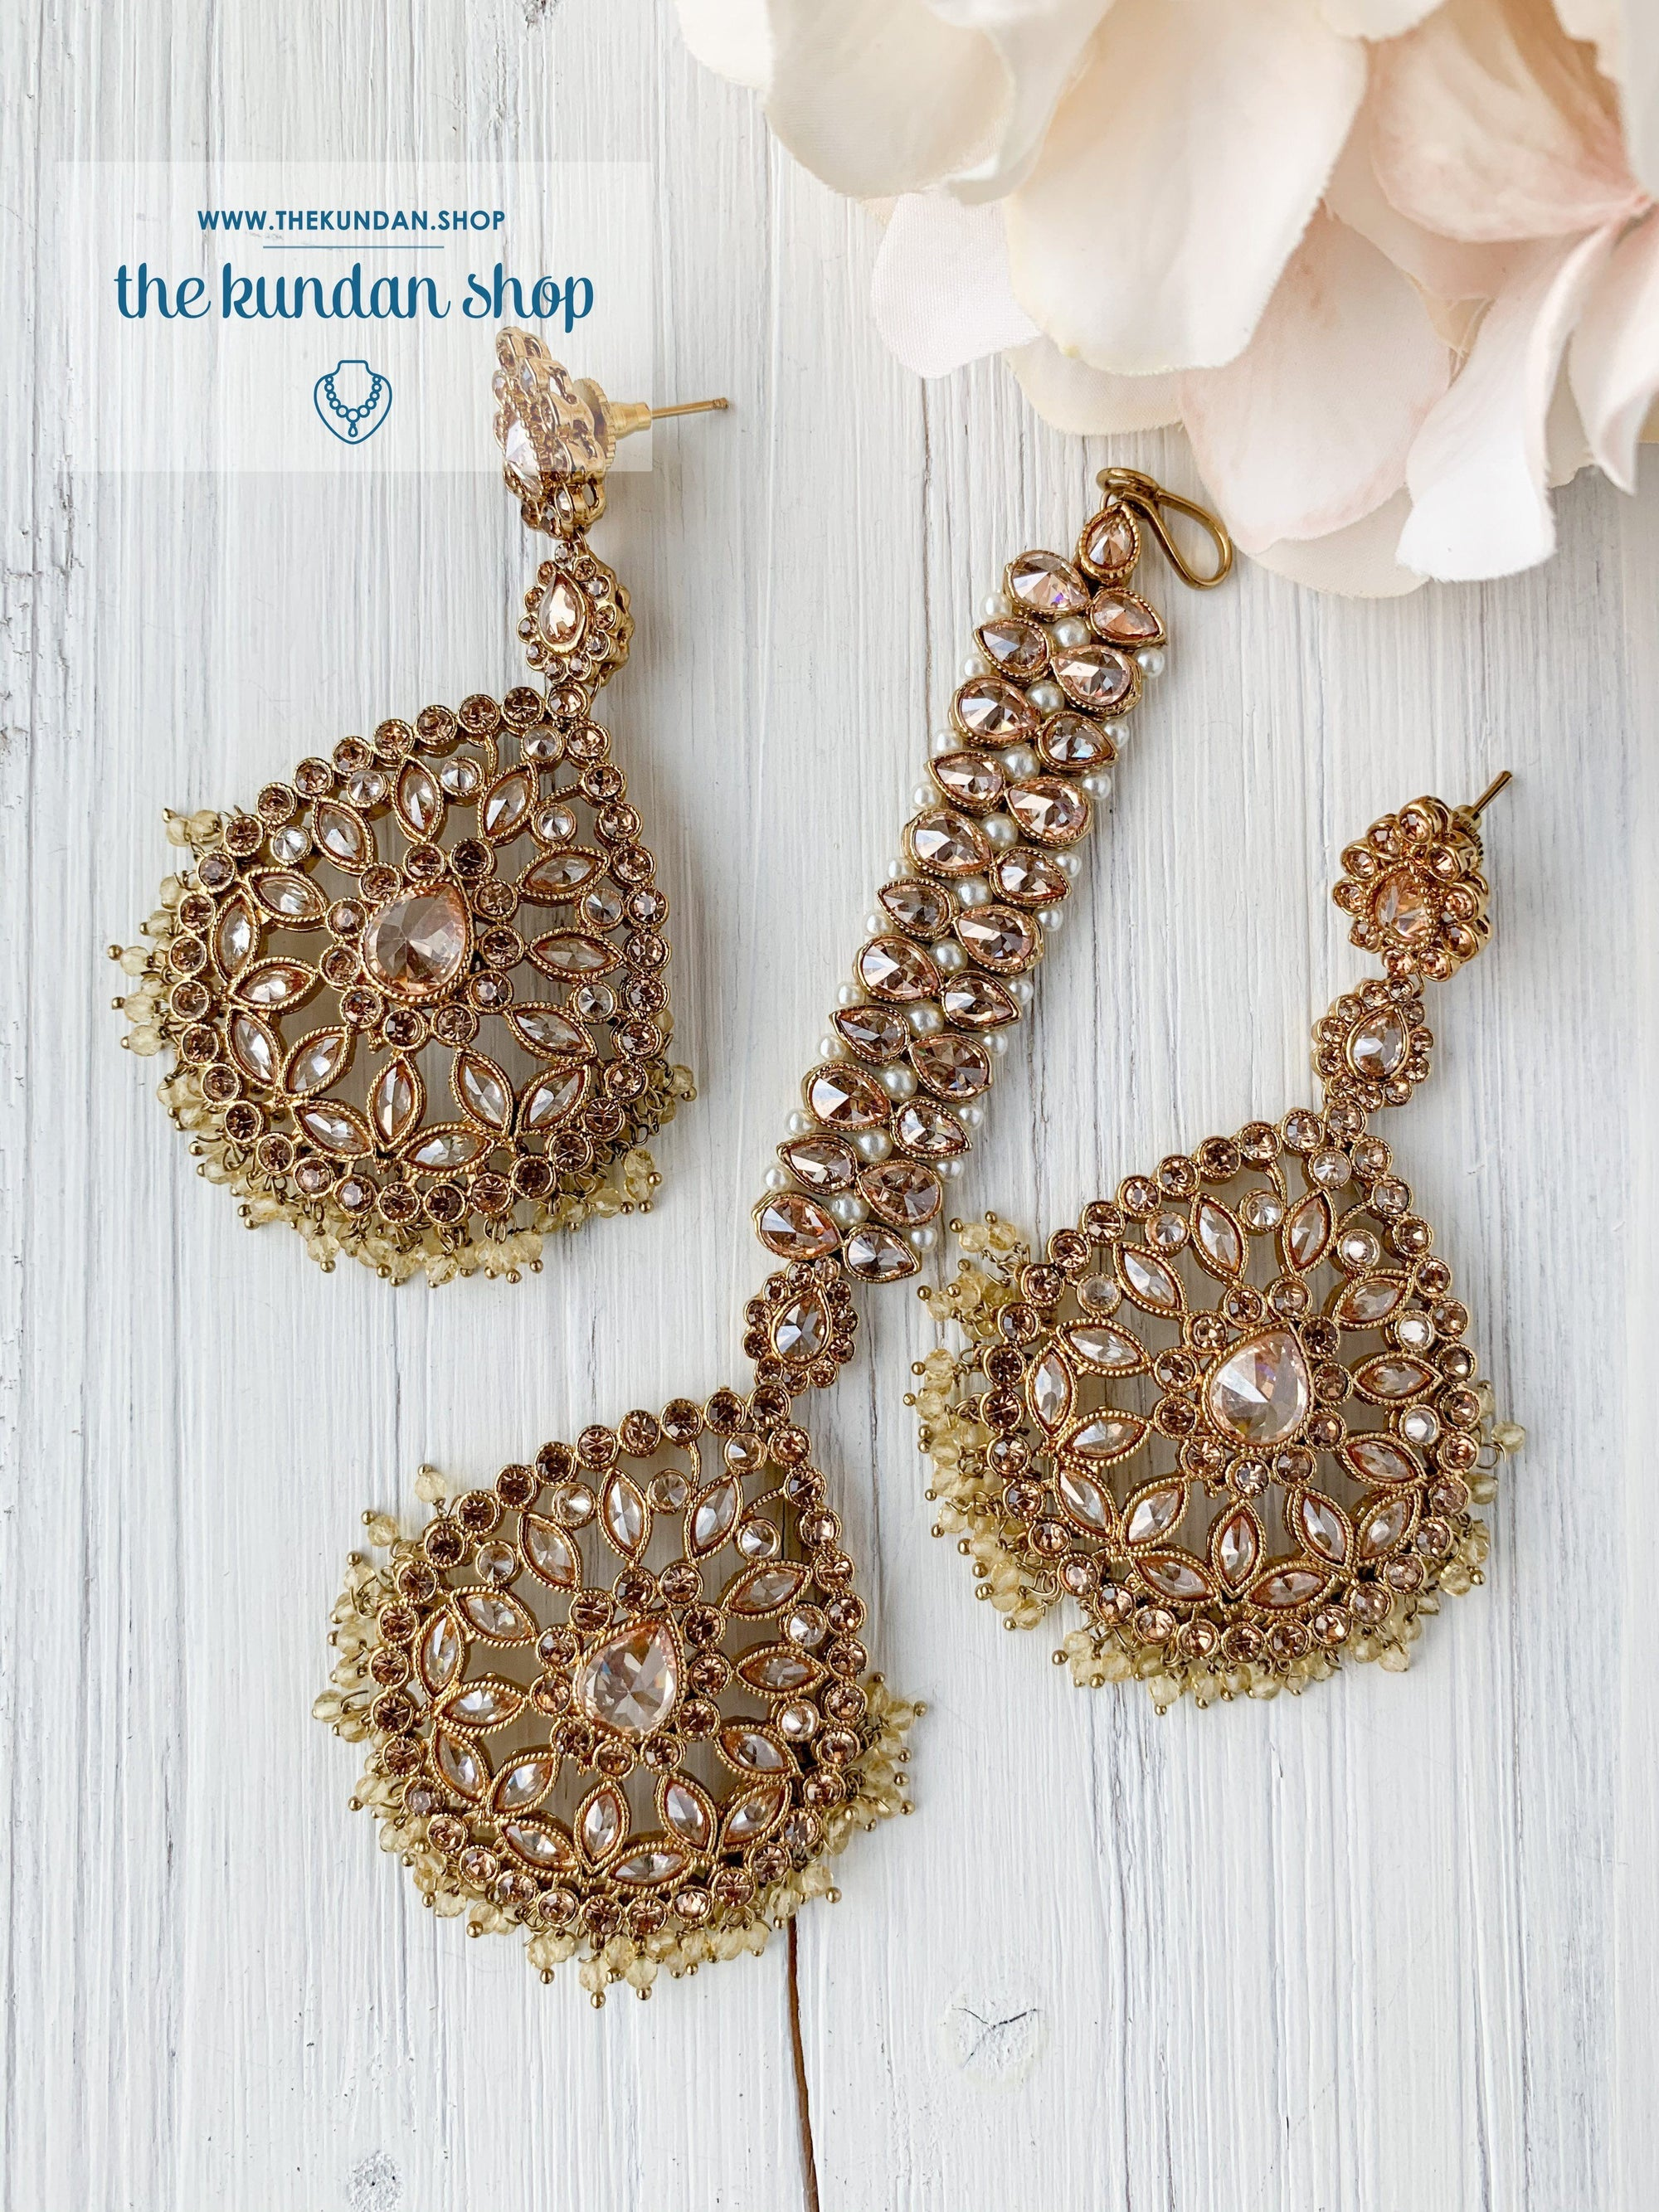 Infinite Love in Pastel Yellow Earrings + Tikka THE KUNDAN SHOP